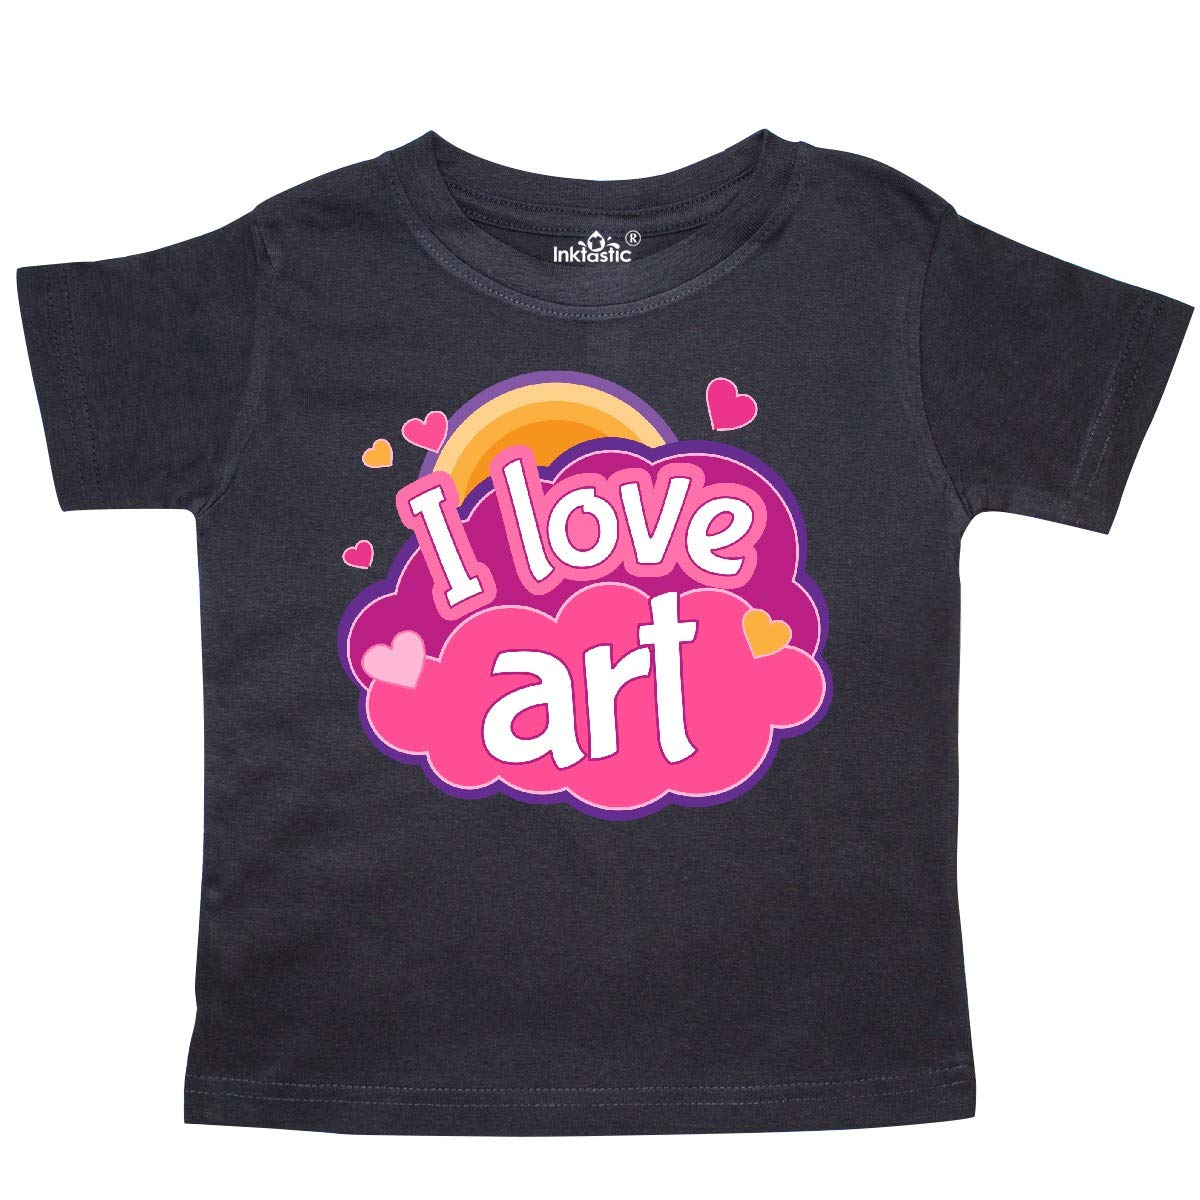 inktastic Artist I Love Art Toddler T-Shirt